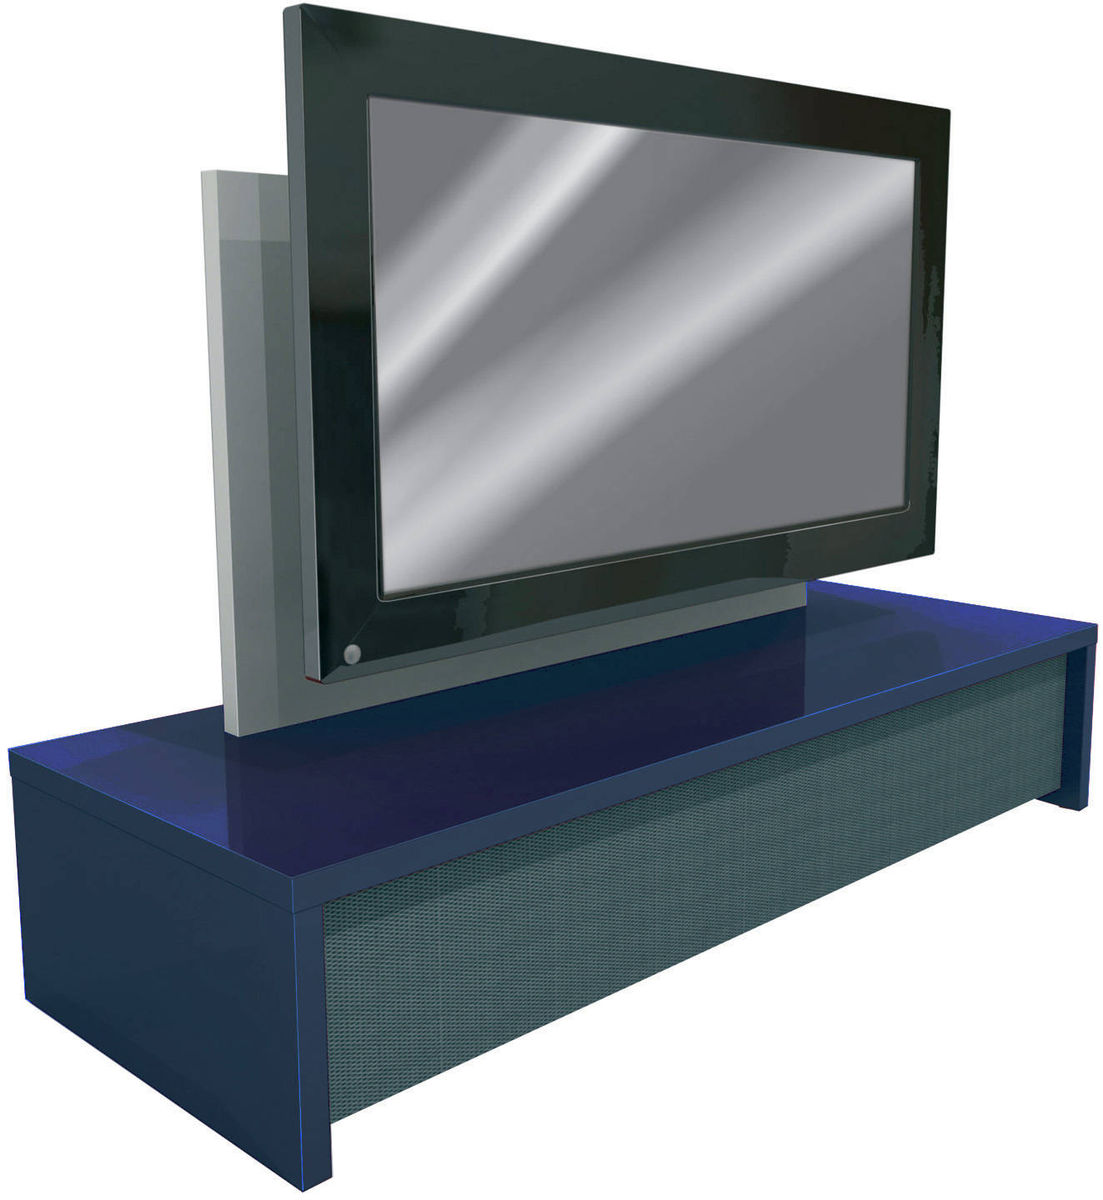 Table television ecran plat for Table pour televiseur ecran plat